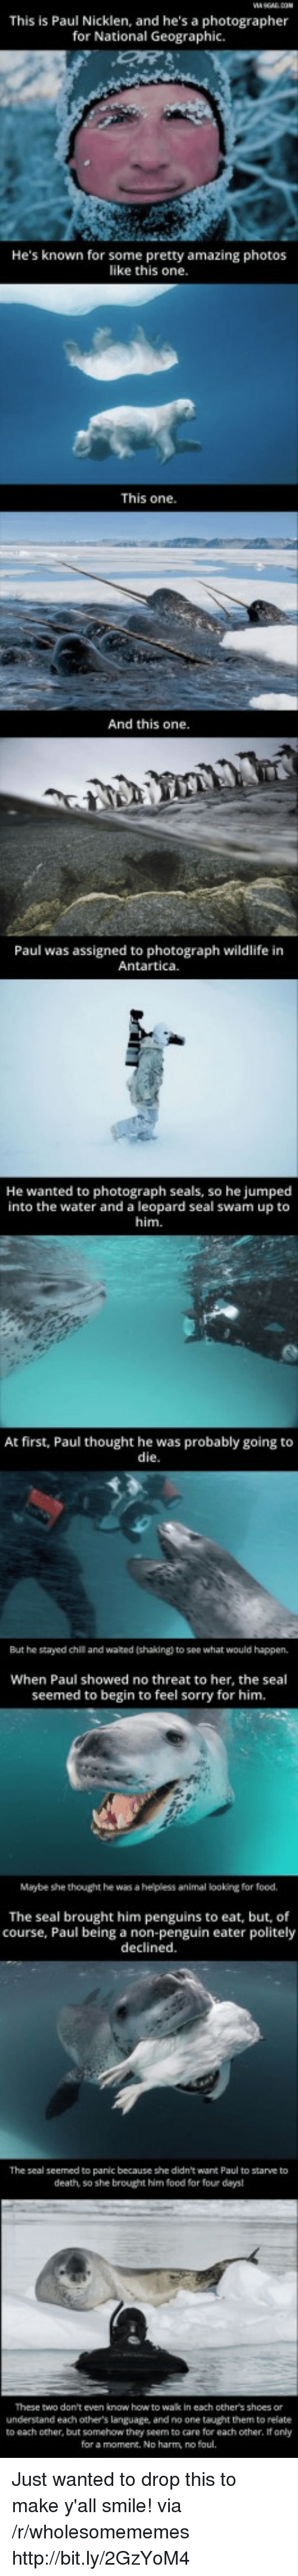 Food, Shoes, and Sorry: This is Paul Nicklen, and he's a photographer  for National Geographic.  He's known for some pretty amazing photos  like this one  This one  And this one.  Paul was assigned to photograph wildlife in  Antartica.  He wanted to  photograph seals, so he jumped  into the water and a leopard seal swam up to  him.  At first, Paul thought he was probably going to  die  But he stayed chil and waited (shaking) to see what would happen,  When Paul showed no threat to her, the seal  seemed to begin to feel sorry for him.  Maybe she thought he was a helpless animal looking for food.  The seal brought him penguins to eat, but, of  course, Paul being a non-penguin eater politely  declined.  The seal seemed to panic because she didn't want Paul to starve to  death, so she brought him food for four days  These two don't even know how to wak in each other's shoes or  understand each others language, and no one taught them to relate  to each other, but somehow they seem to care for each other, If only  for a moment. No harm, no foul. Just wanted to drop this to make y'all smile! via /r/wholesomememes http://bit.ly/2GzYoM4